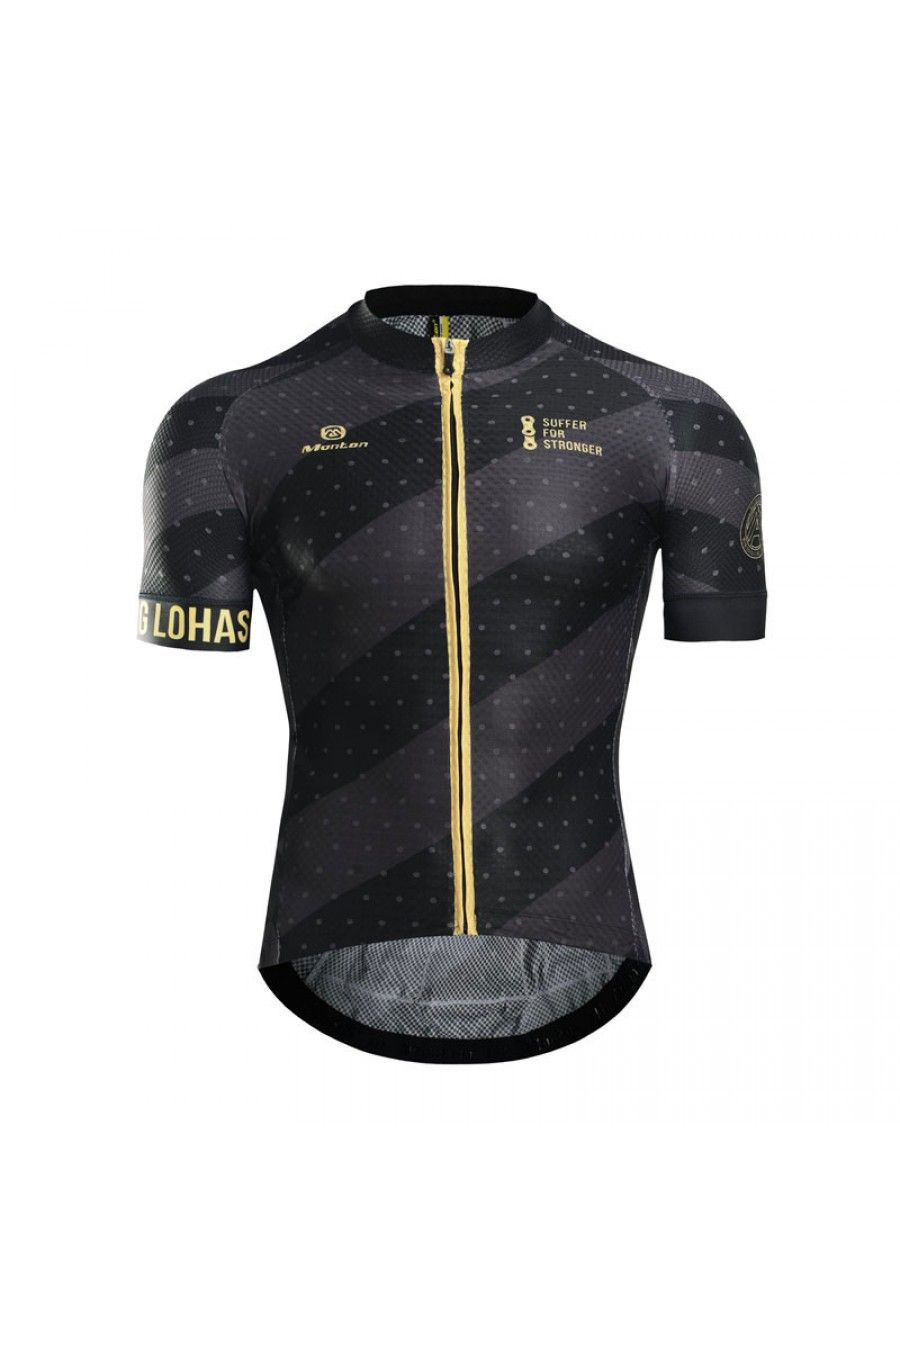 ff45c5ad4 unique bike jerseys …